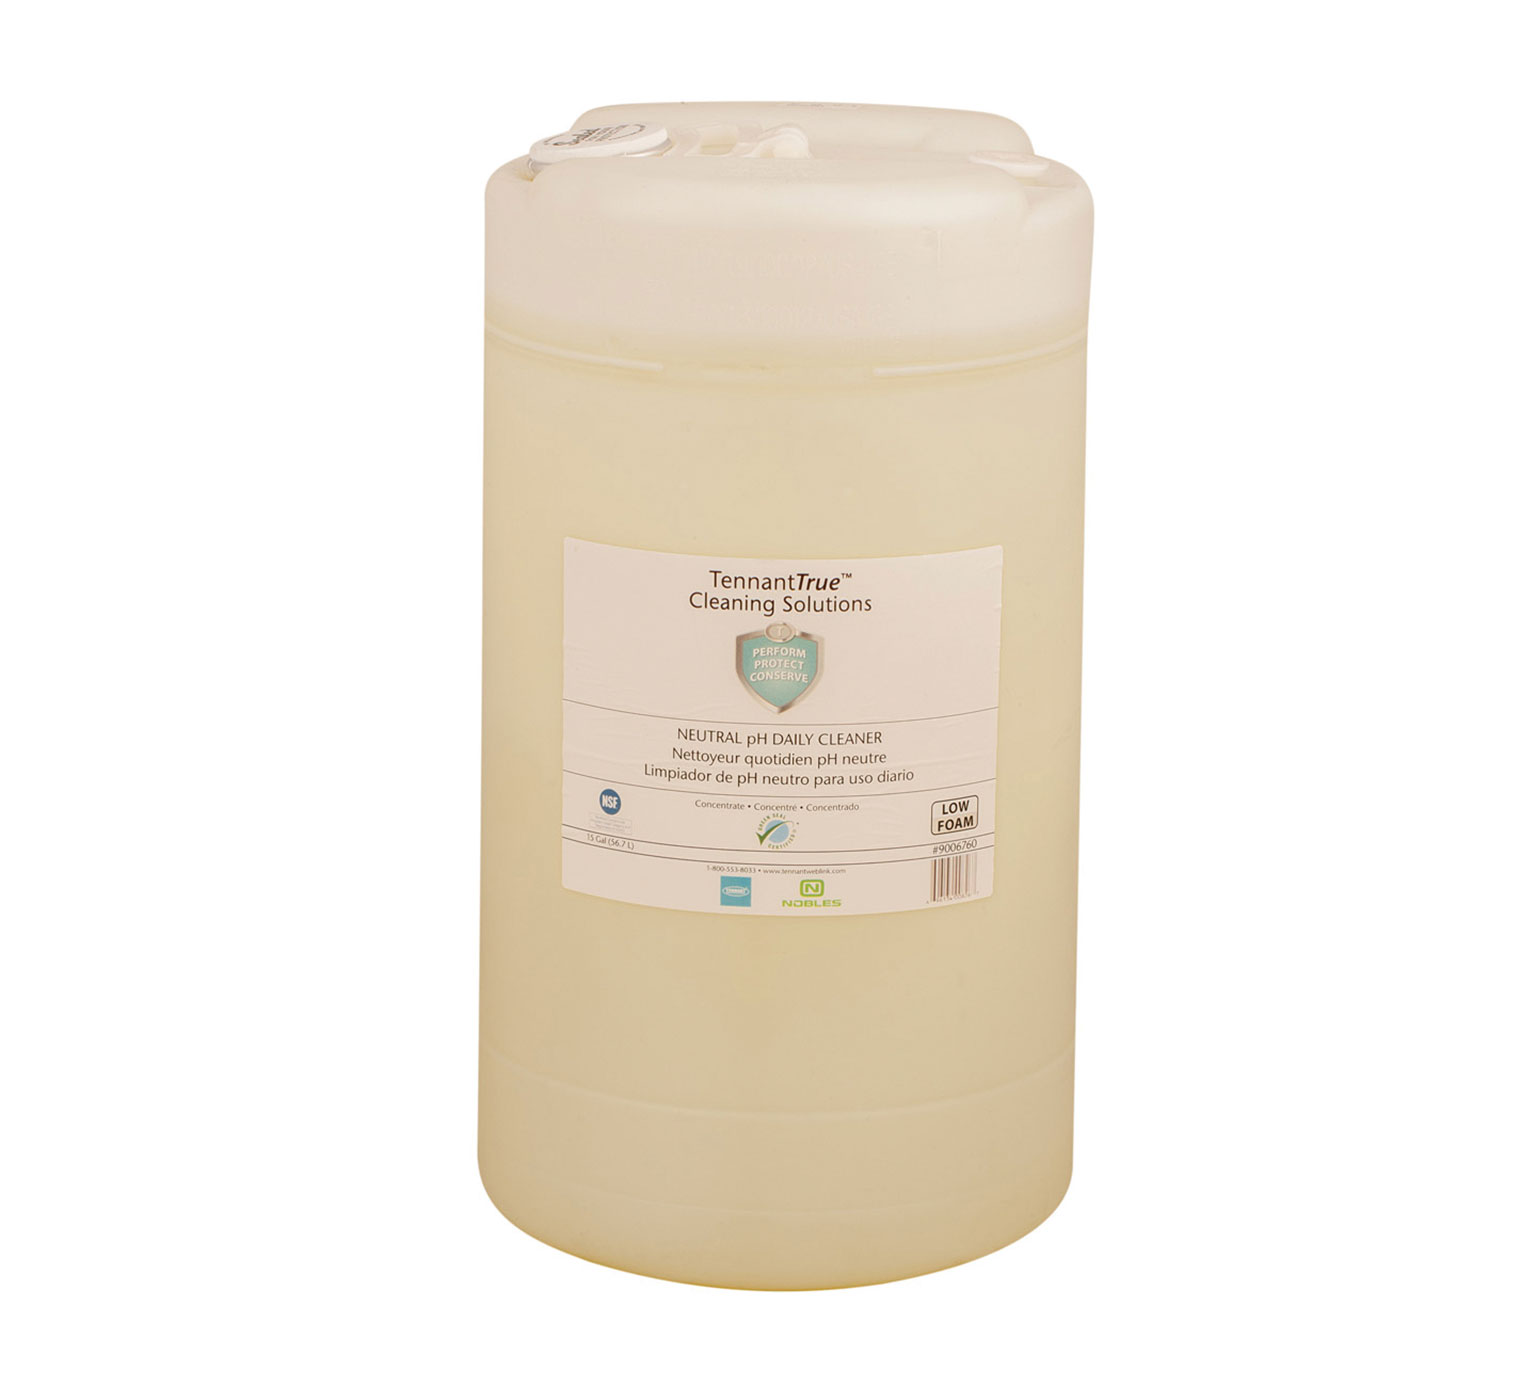 Tennant Clear Neutral pH Daily Cleaner 15 Gallon 9006760